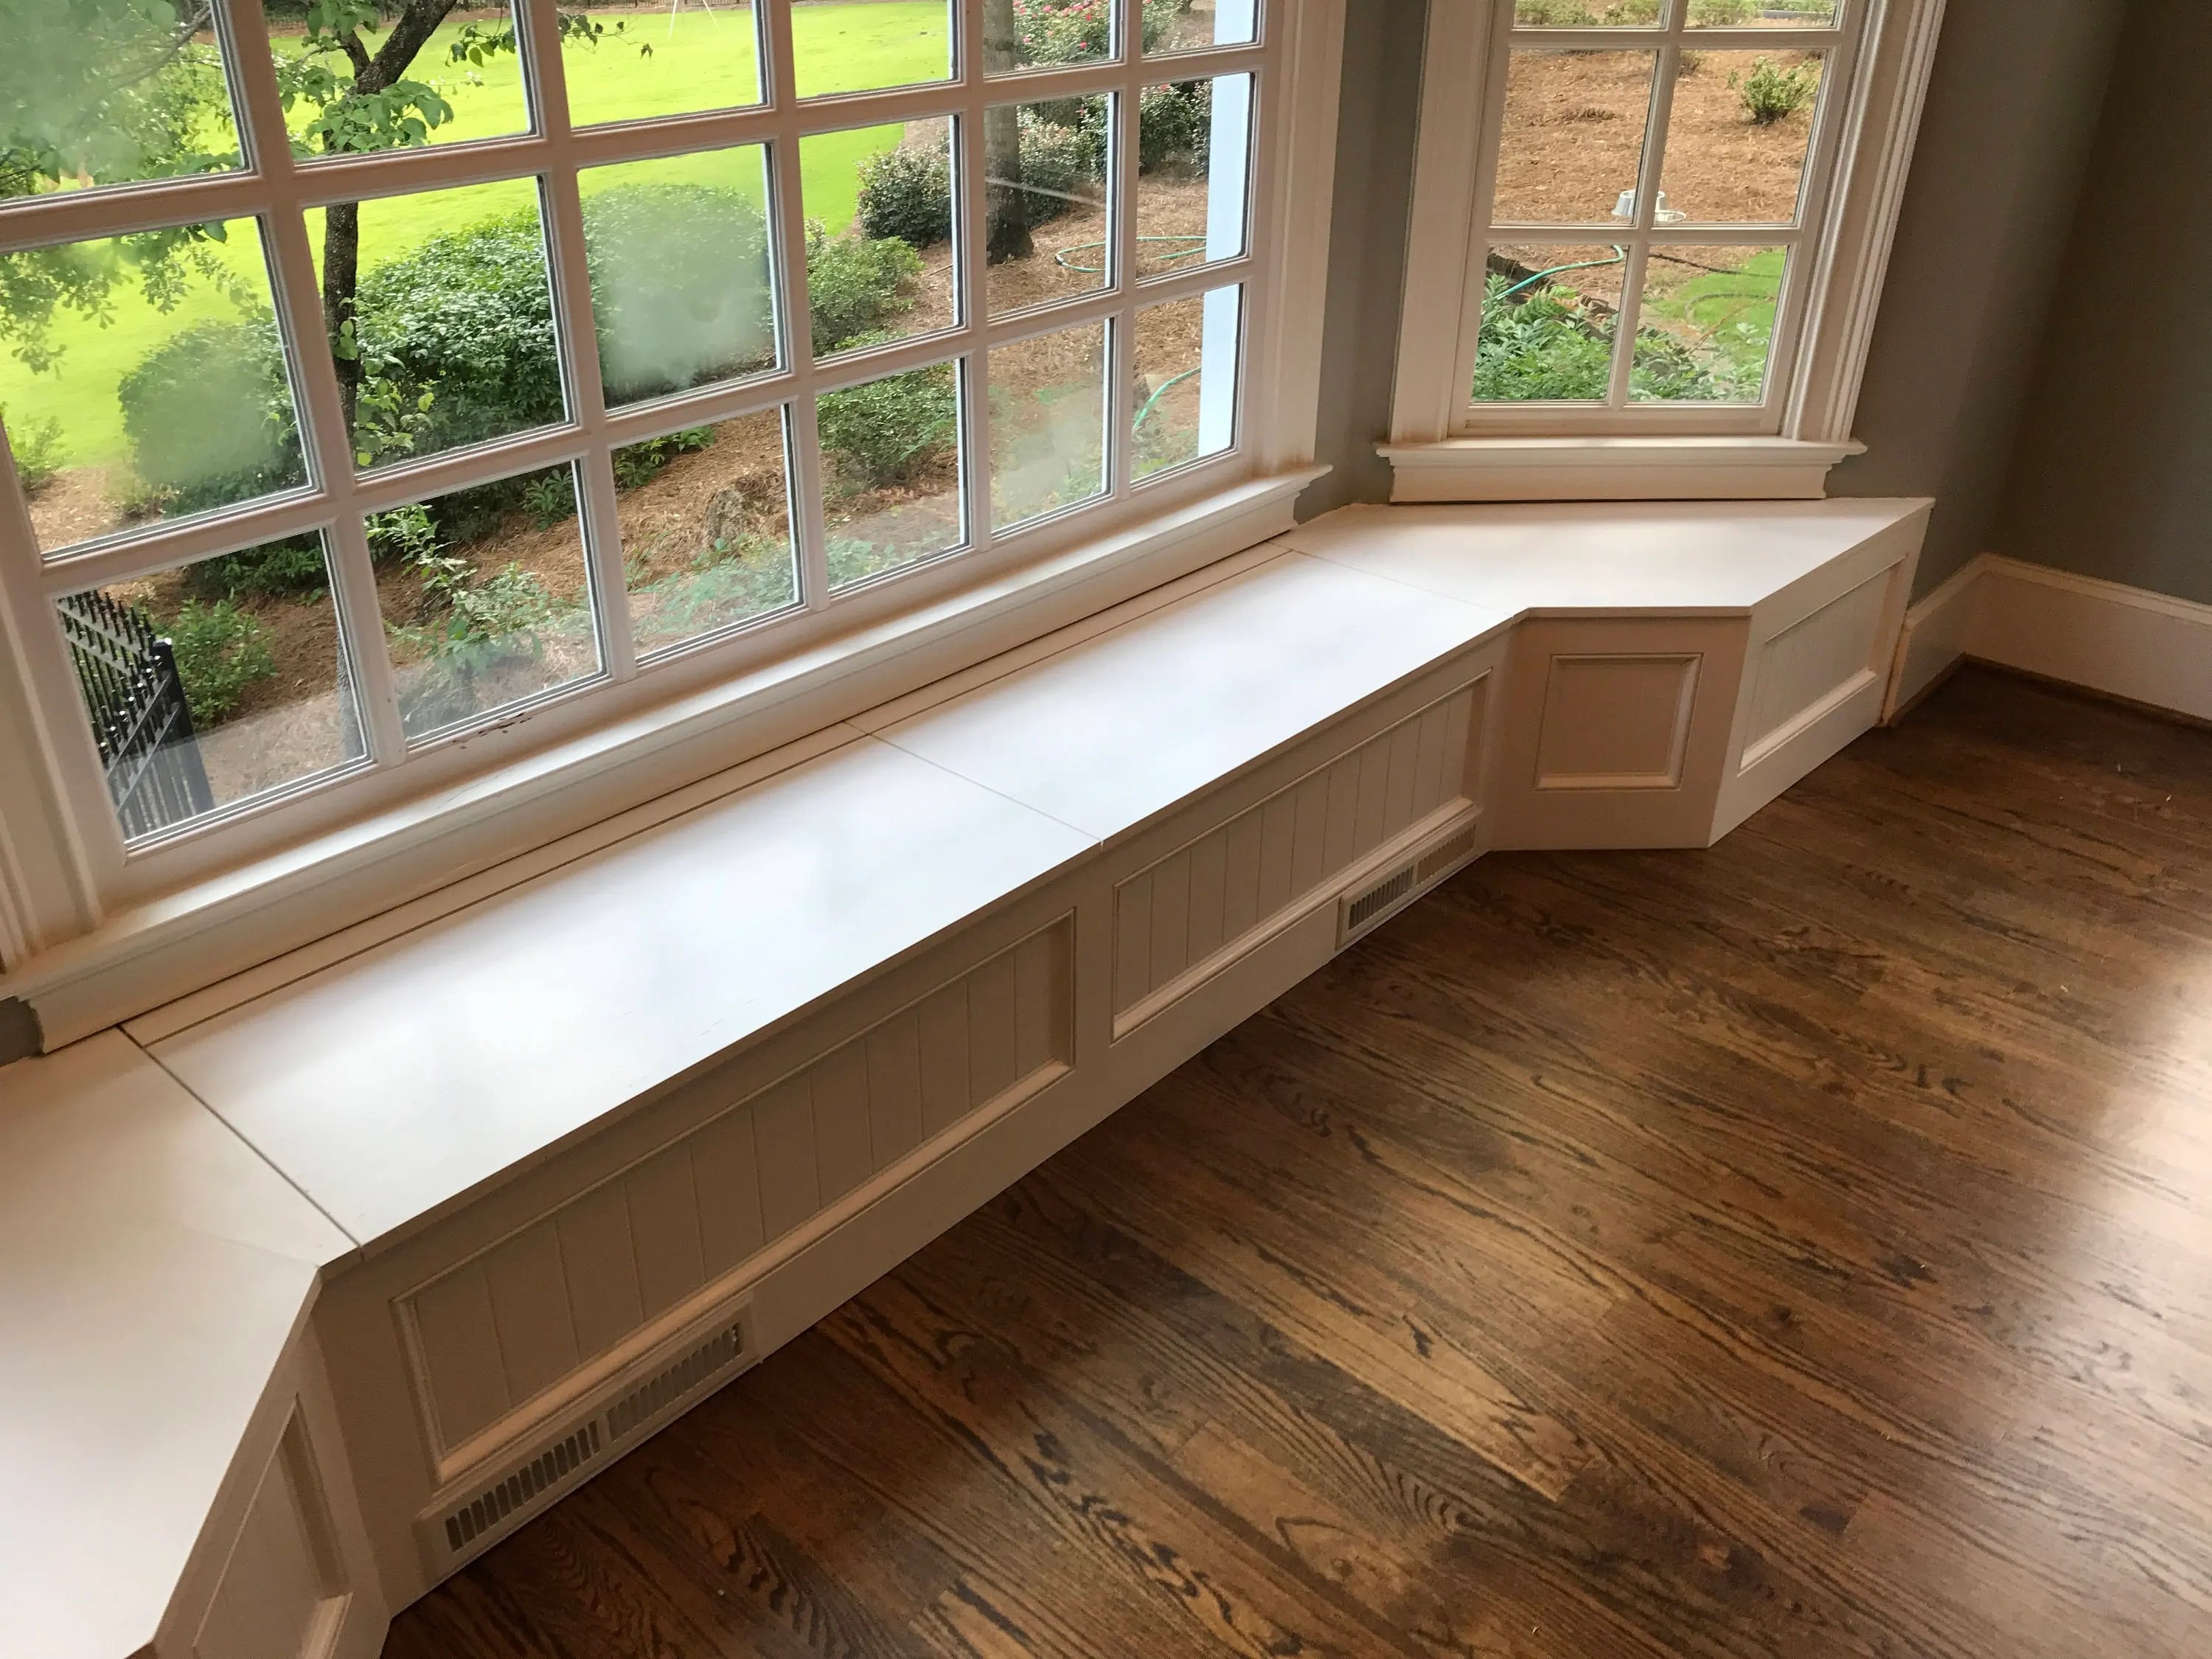 Banquette Bench For A Bay Window Kitchen Seating Shaped